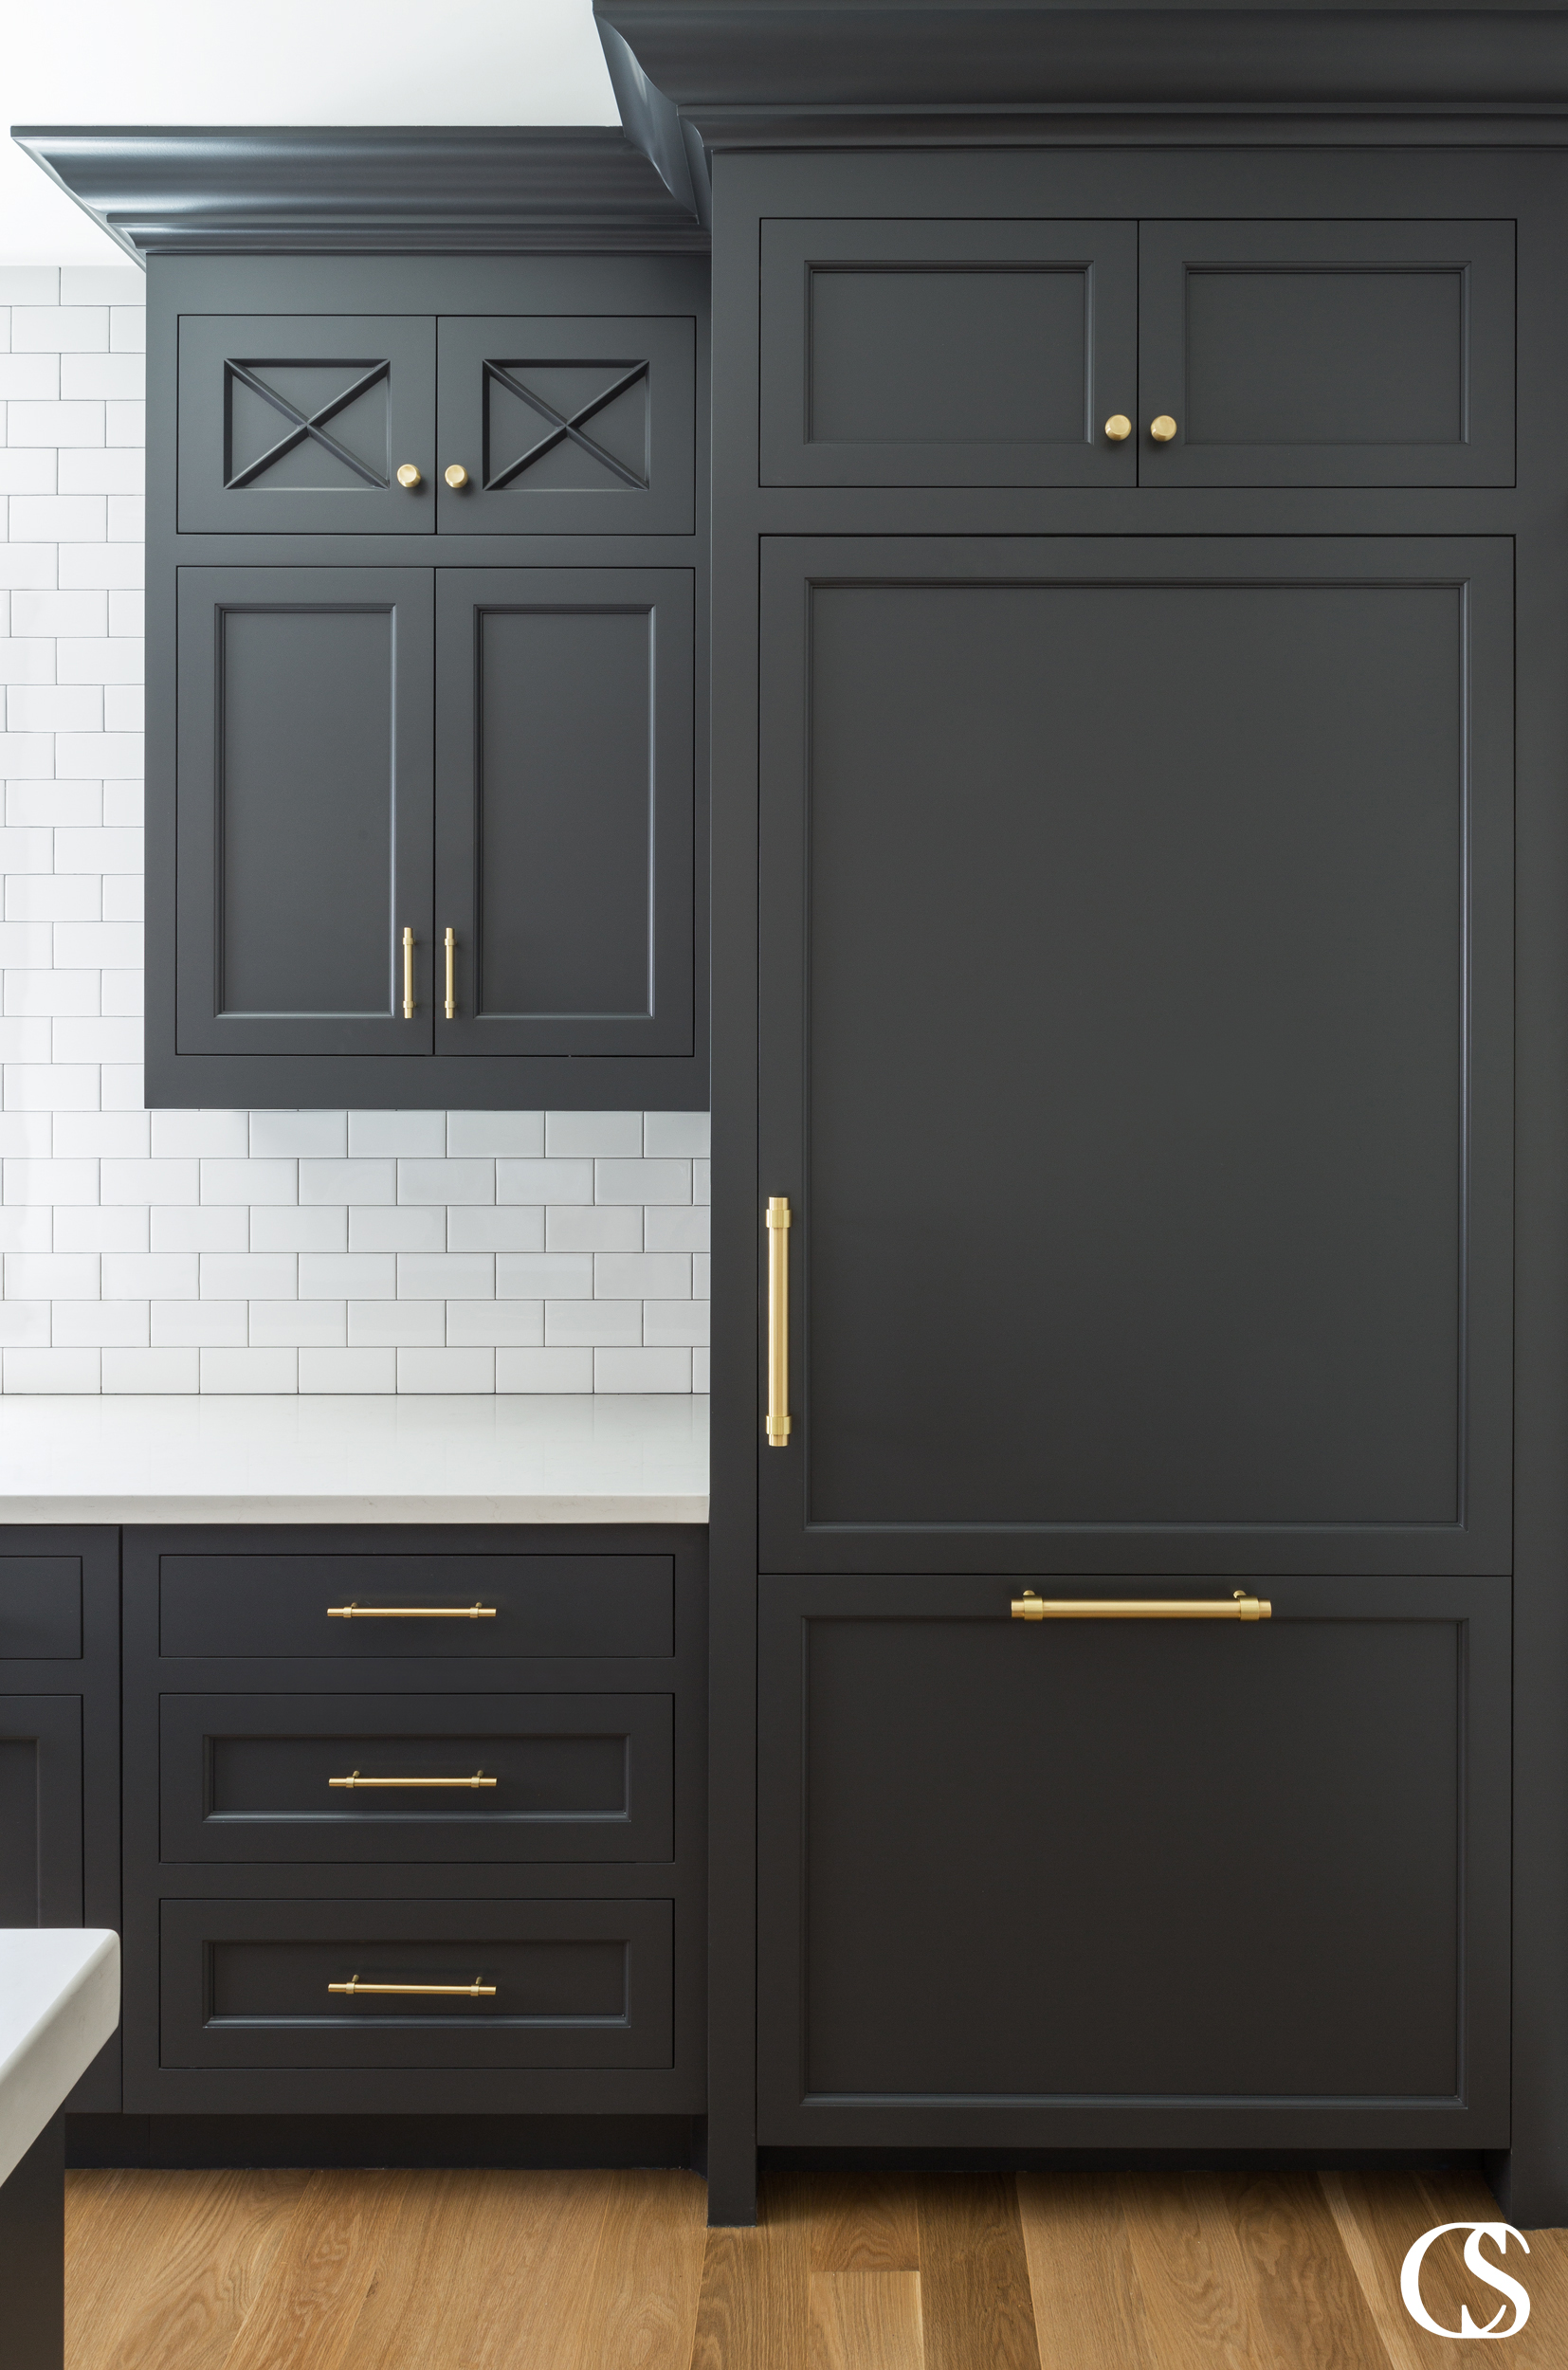 The flat panel cabinet doors in this black kitchen cabinet design create a timeless effect in a three tone kitchen.